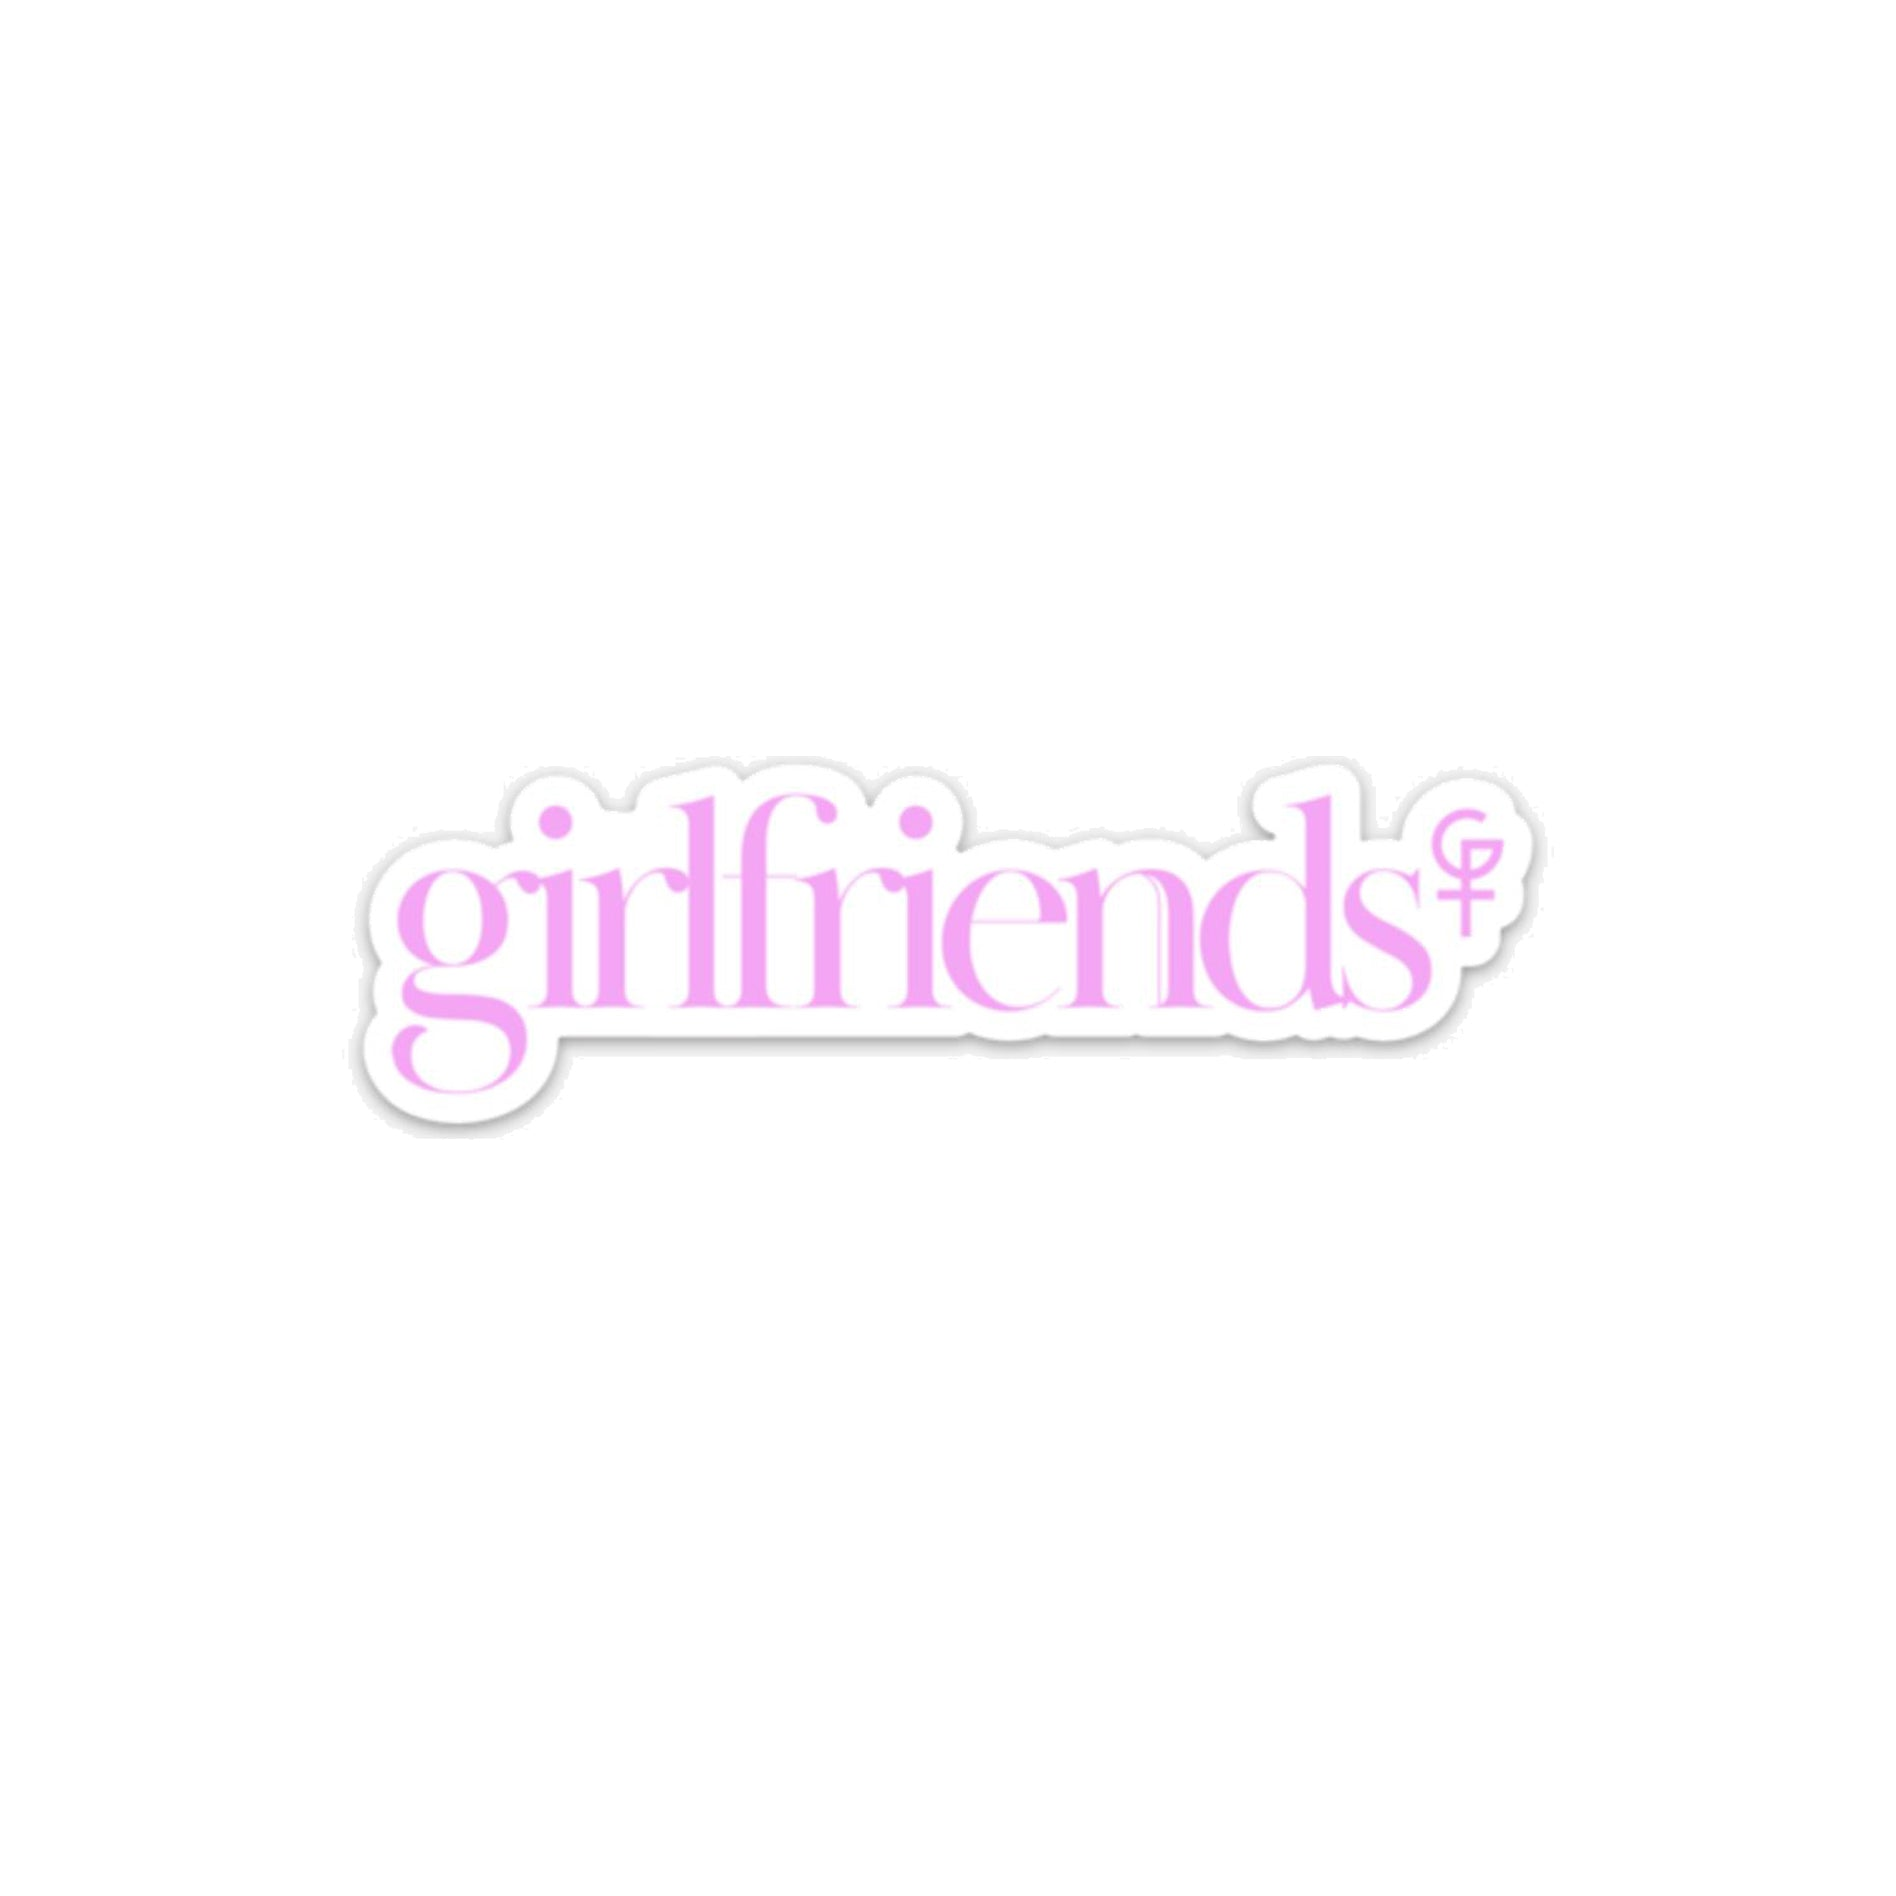 "Girlfriends Pink Font Die Cut Sticker - 5"" x 1.5"""